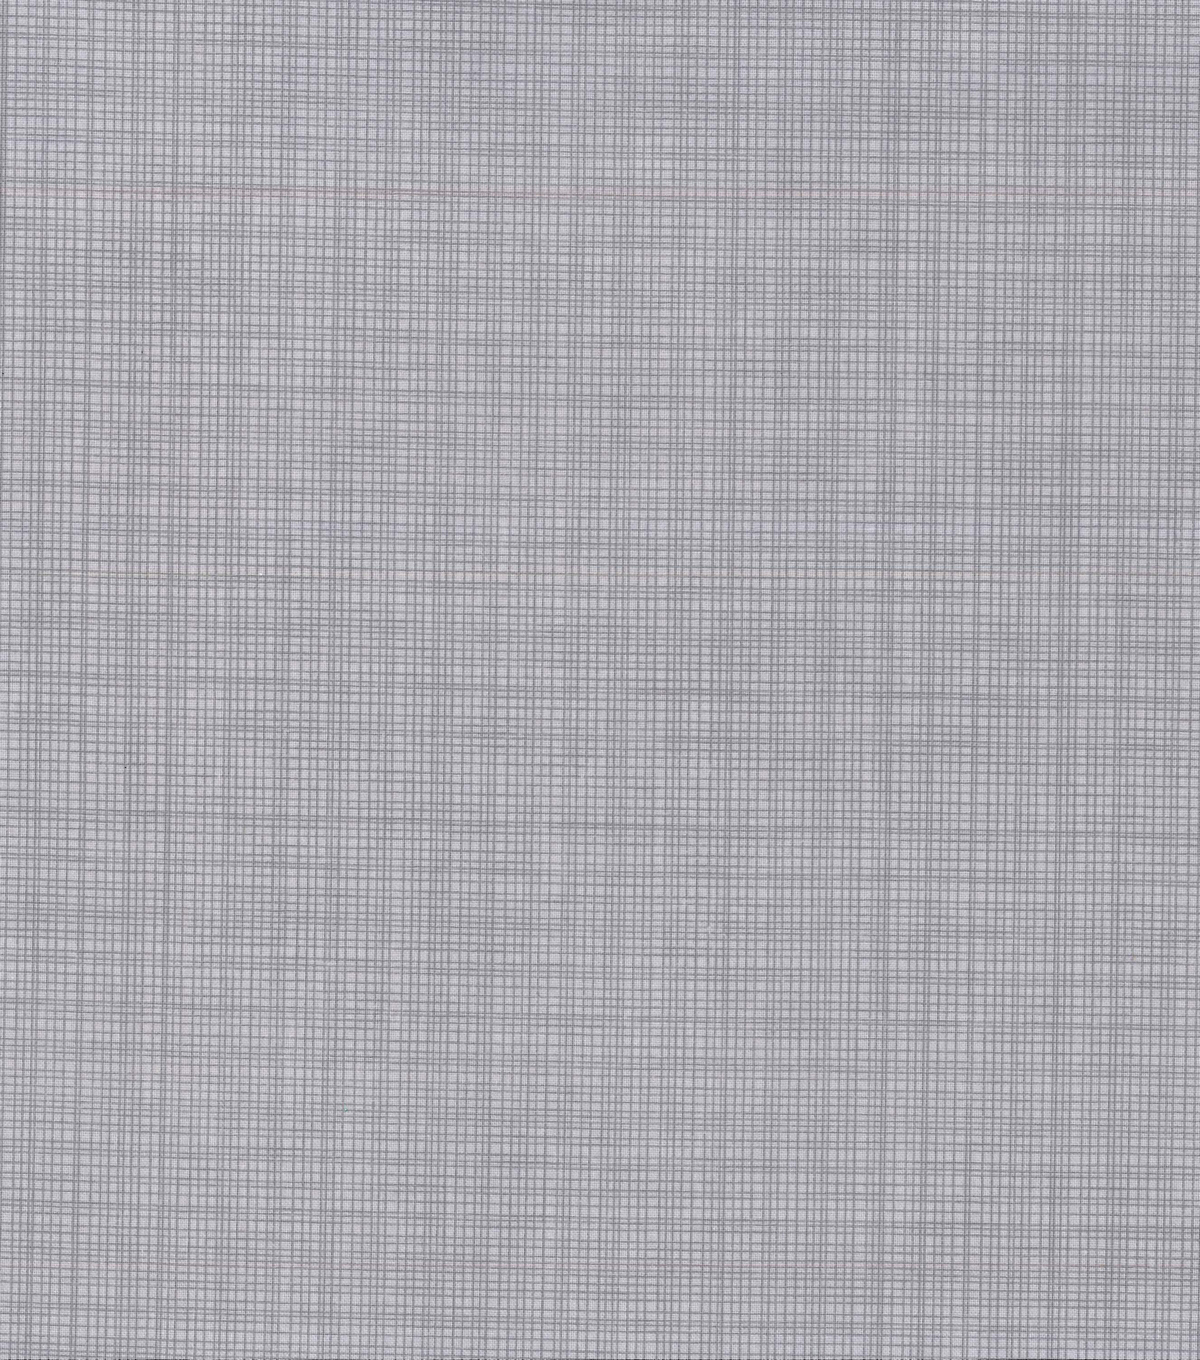 Keepsake Calico Cotton Fabric Light Gray Blender Texture